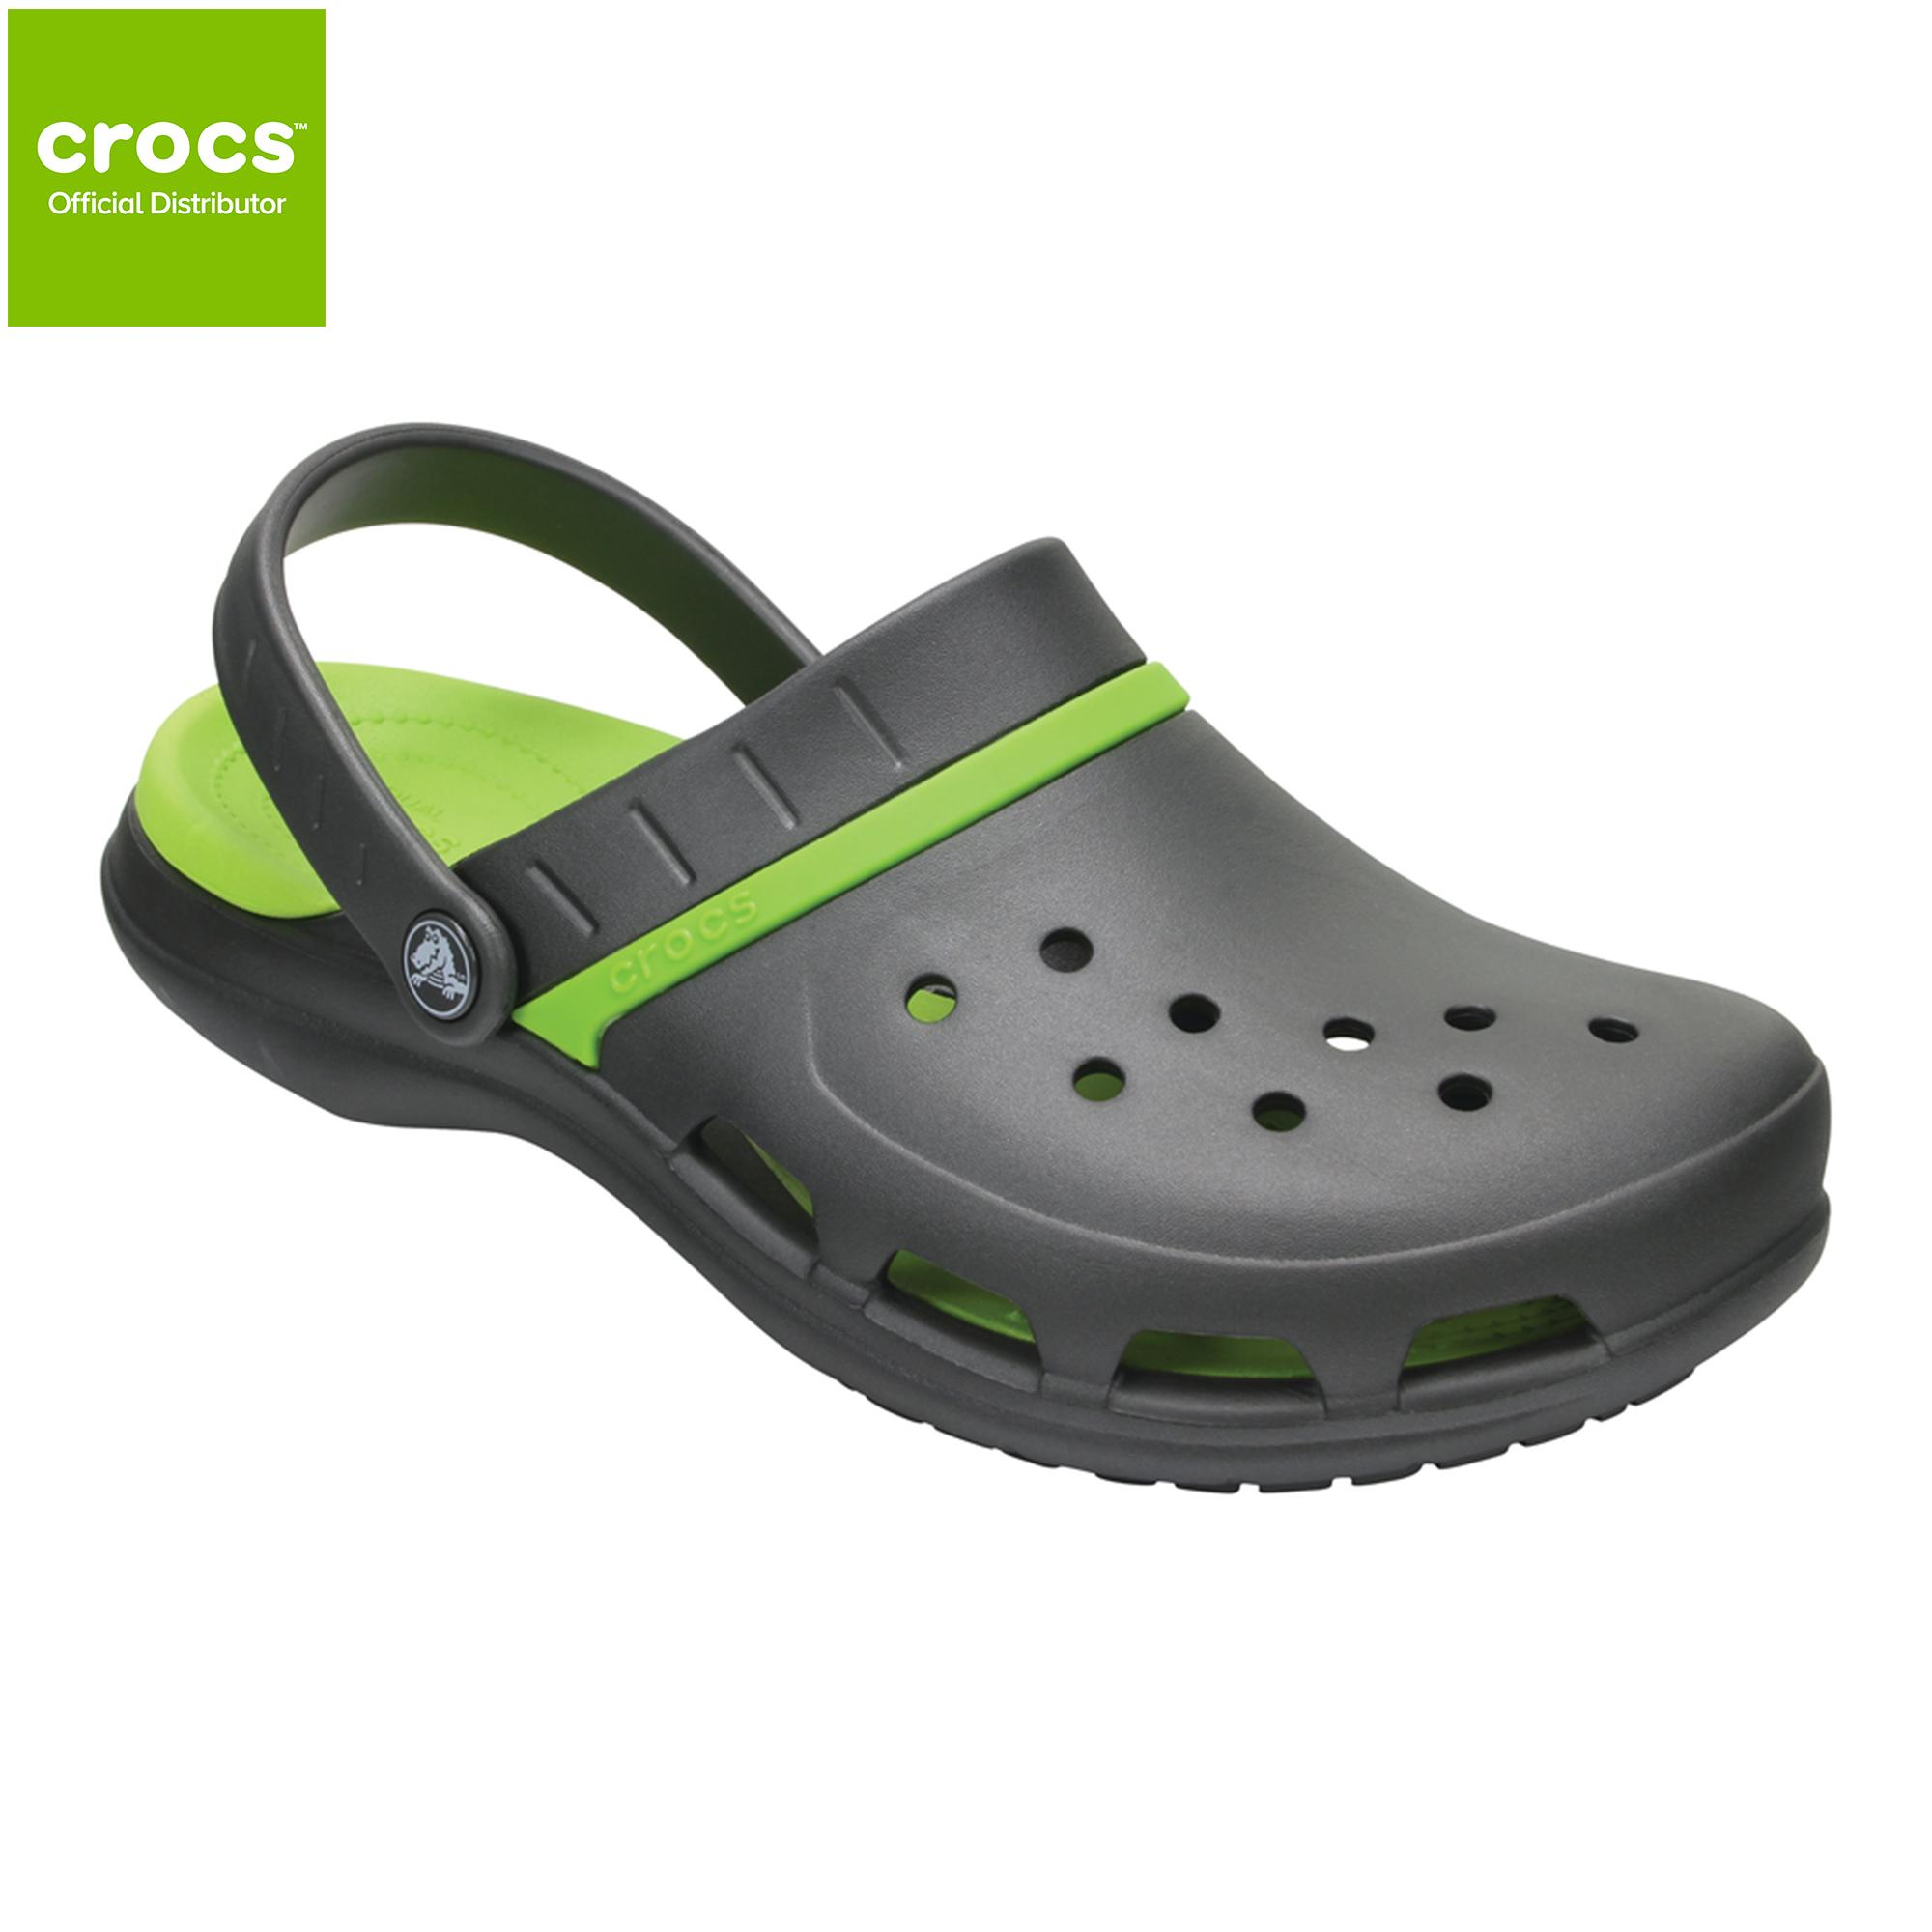 69b4b8126a6c Crocs Philippines  Crocs price list - Crocs Flats